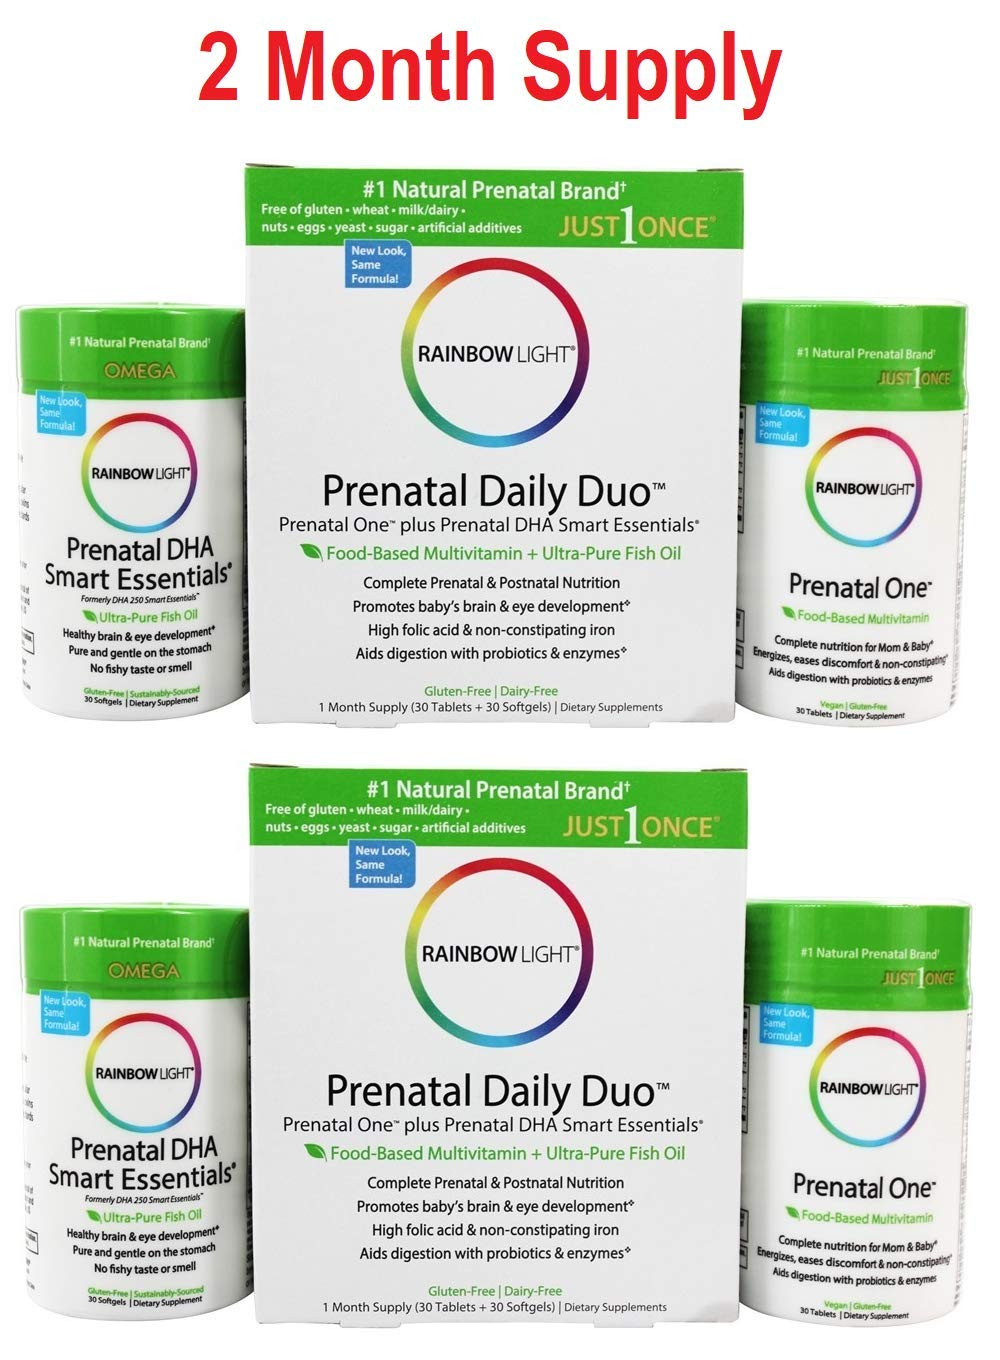 Rainbow Light - Prenatal Daily Duo, Prenatal One and Prenatal DHA Support a Healthy Pregnancy, Brain and Eye Development with Choline and Omega-3s DHA and EPA, Gluten-Free, Dairy-Free, 2 Month Supply